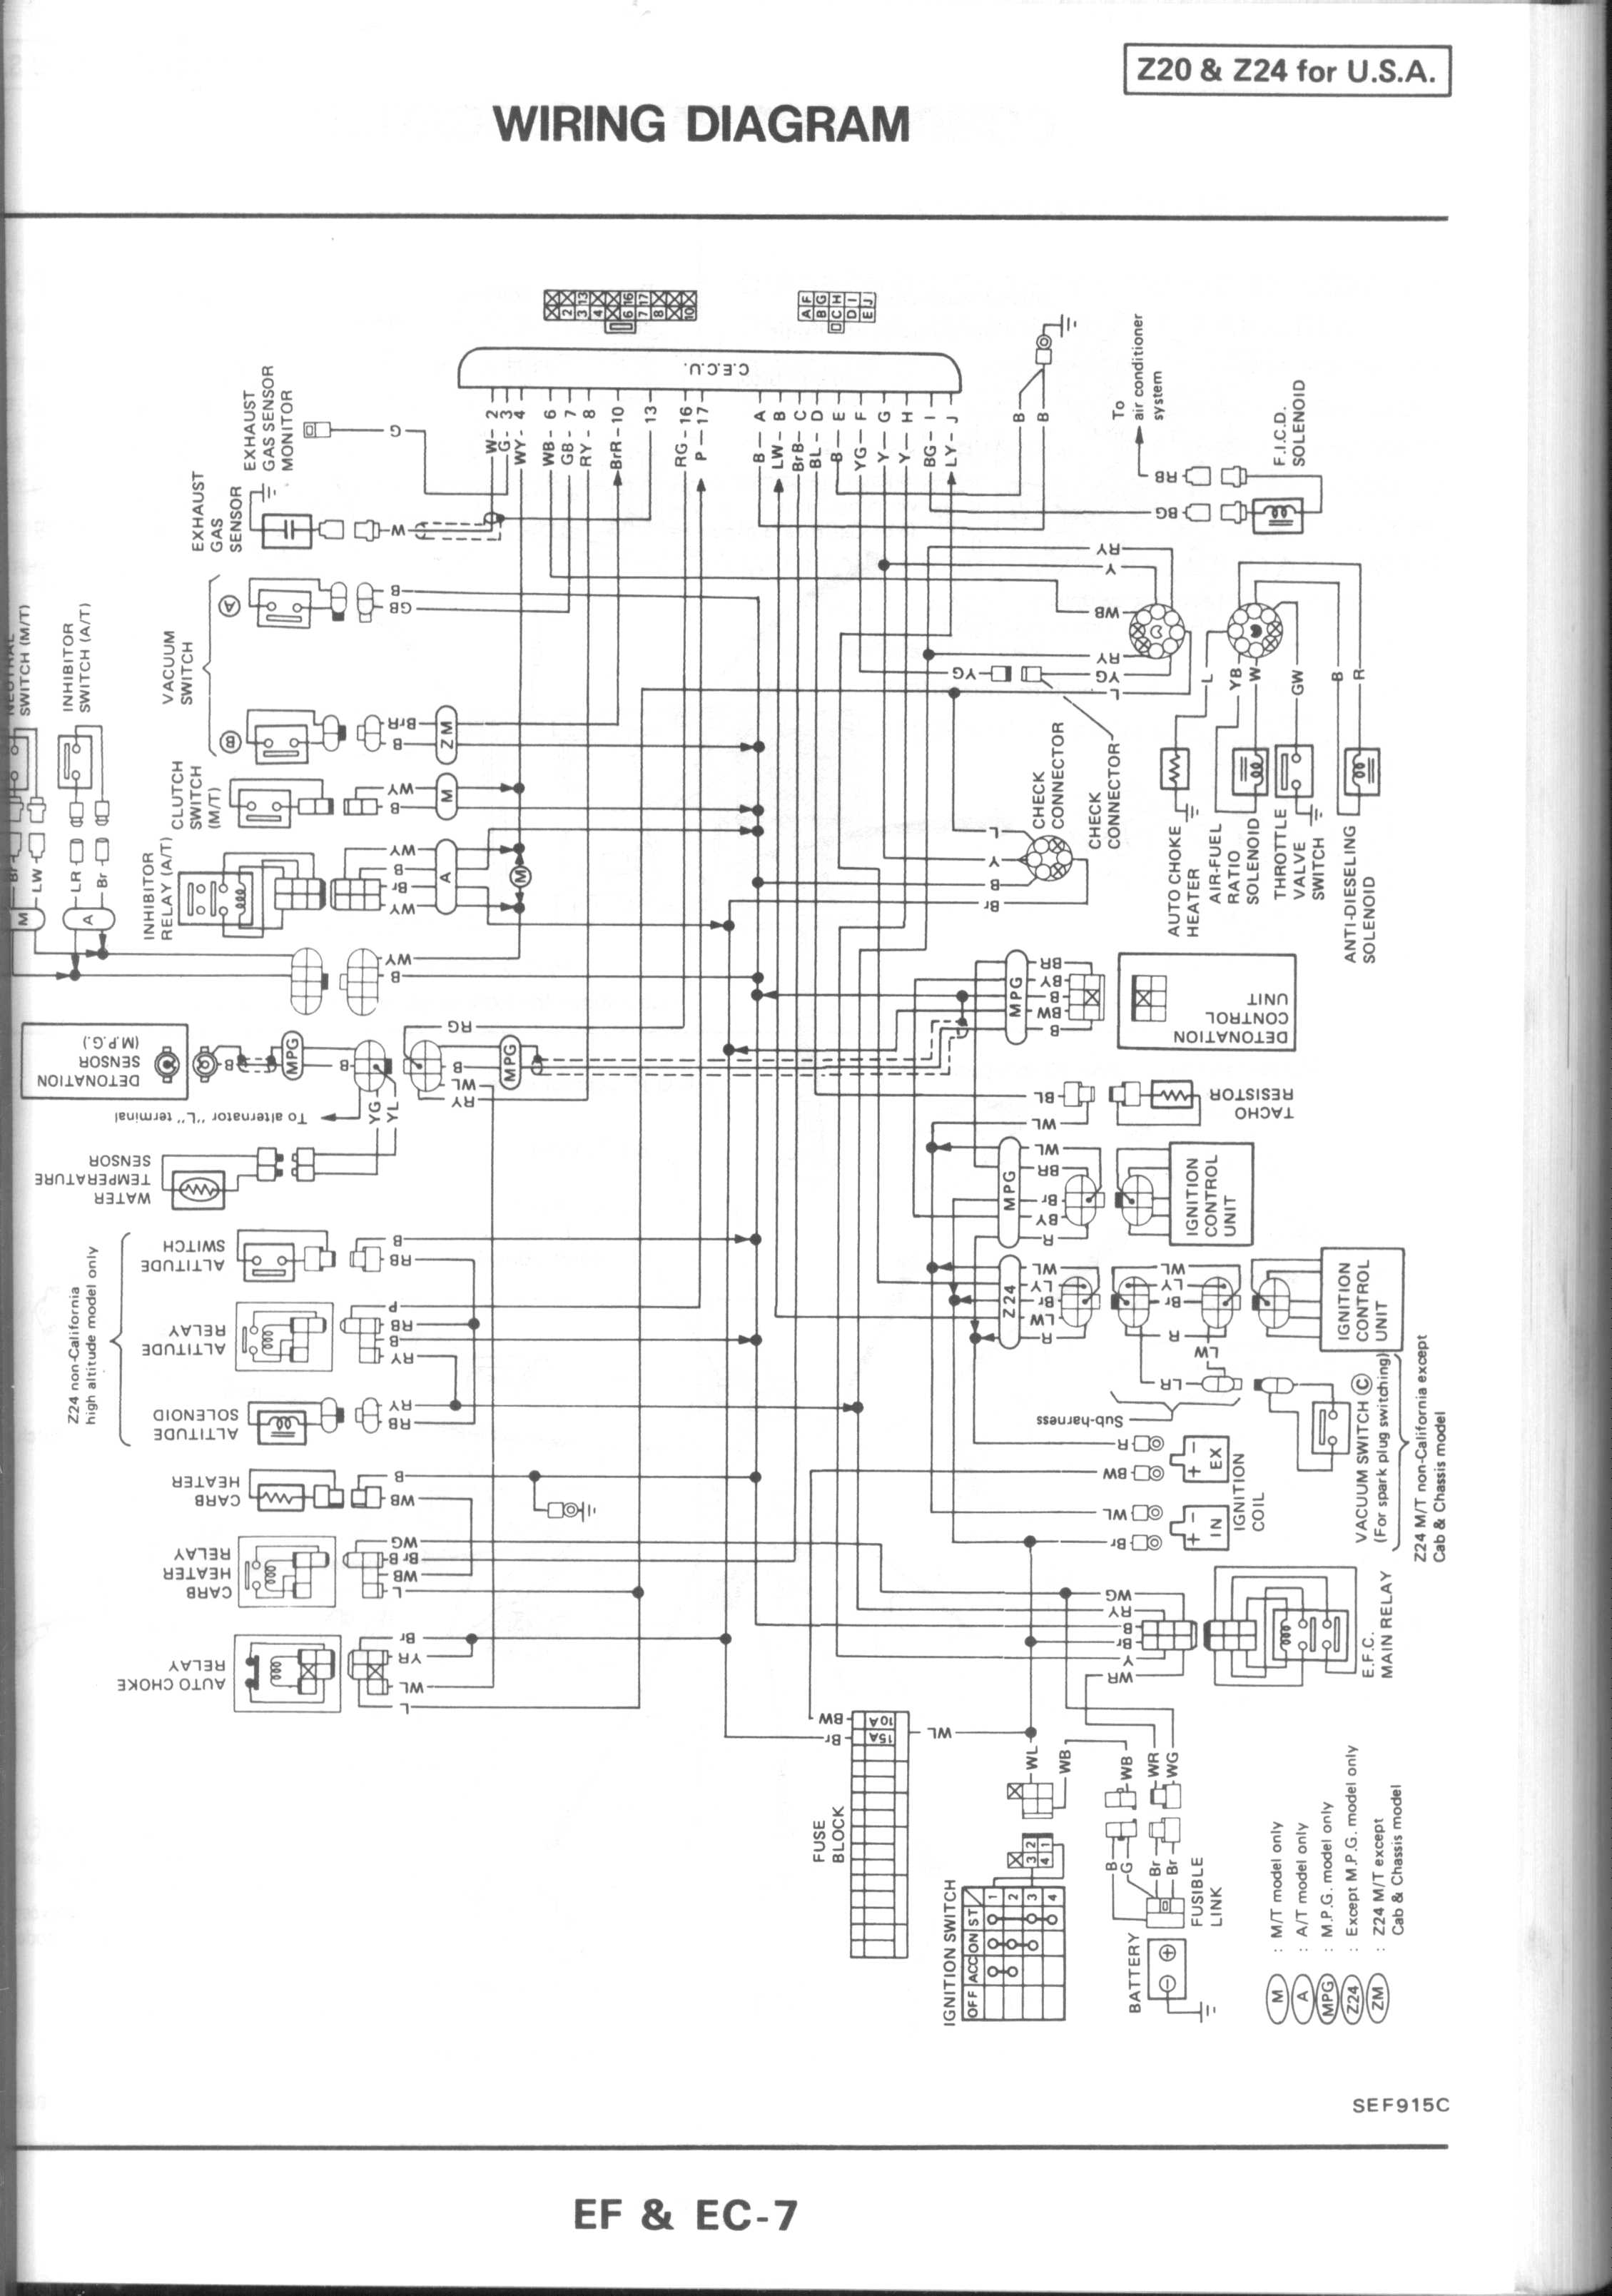 720_z24_ecu_wiring nissan nut nissan hardbody wiring diagram at nearapp.co